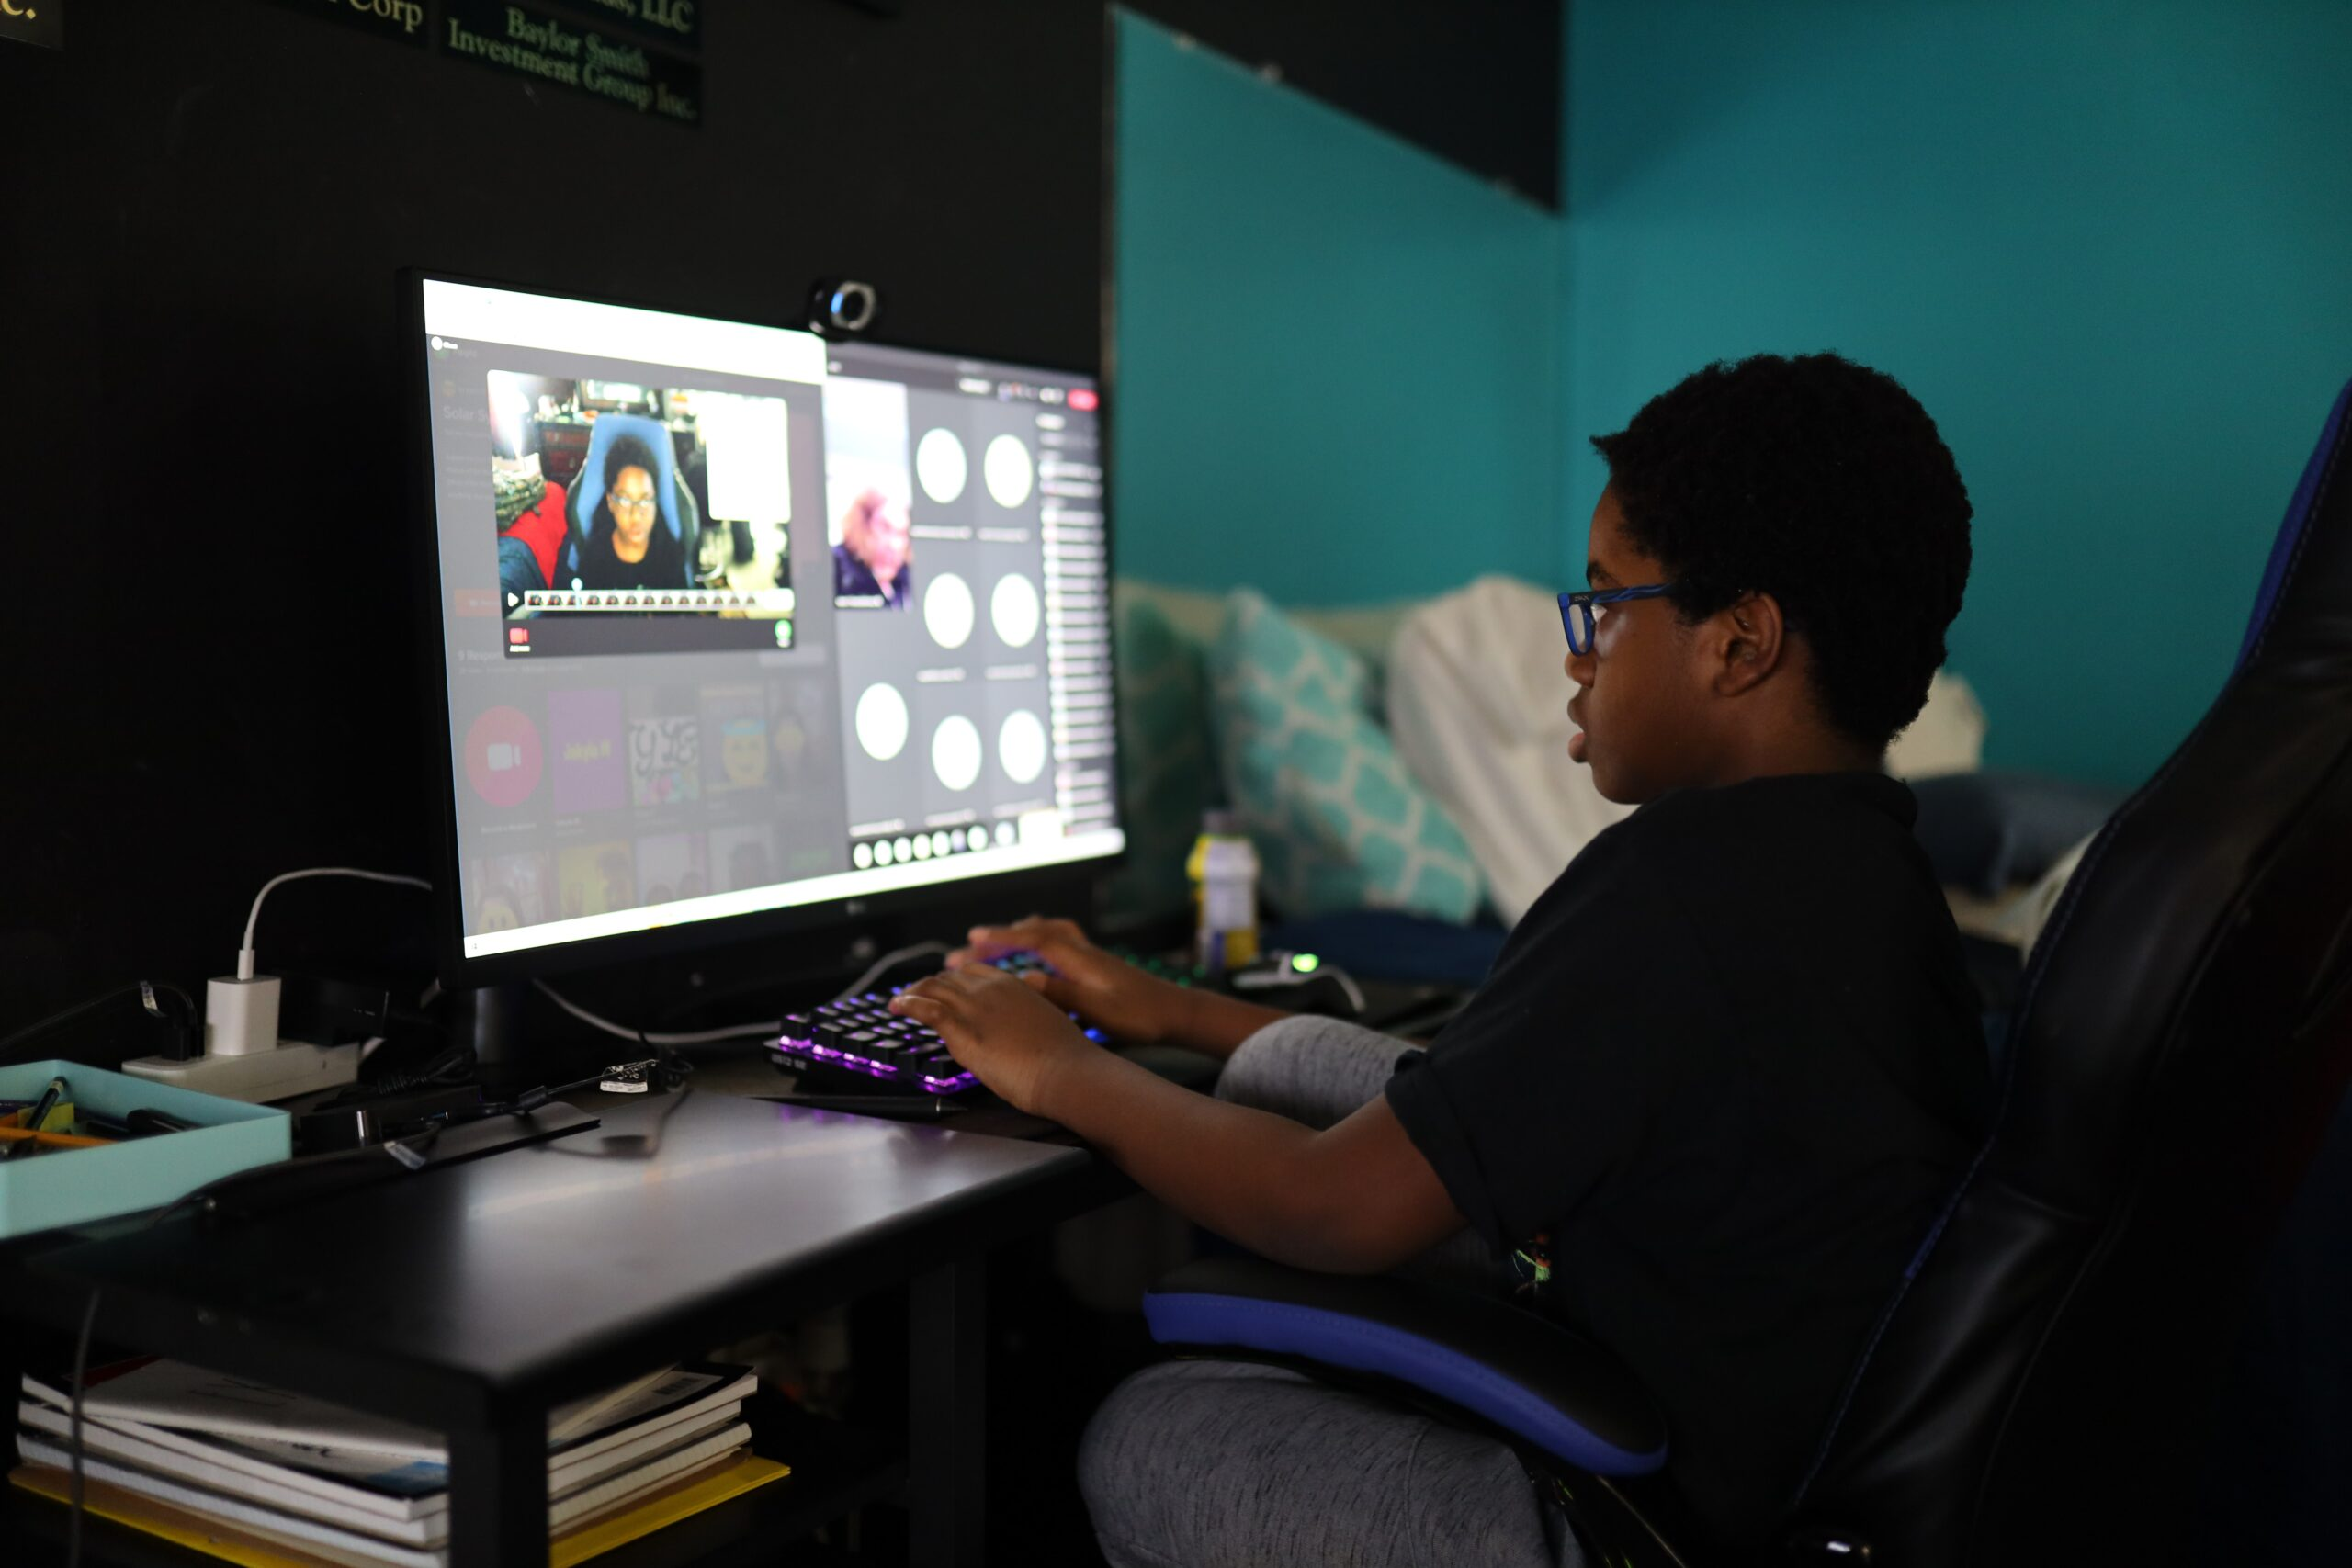 Researchers Explore The Impact Of Virtual Learning On Students